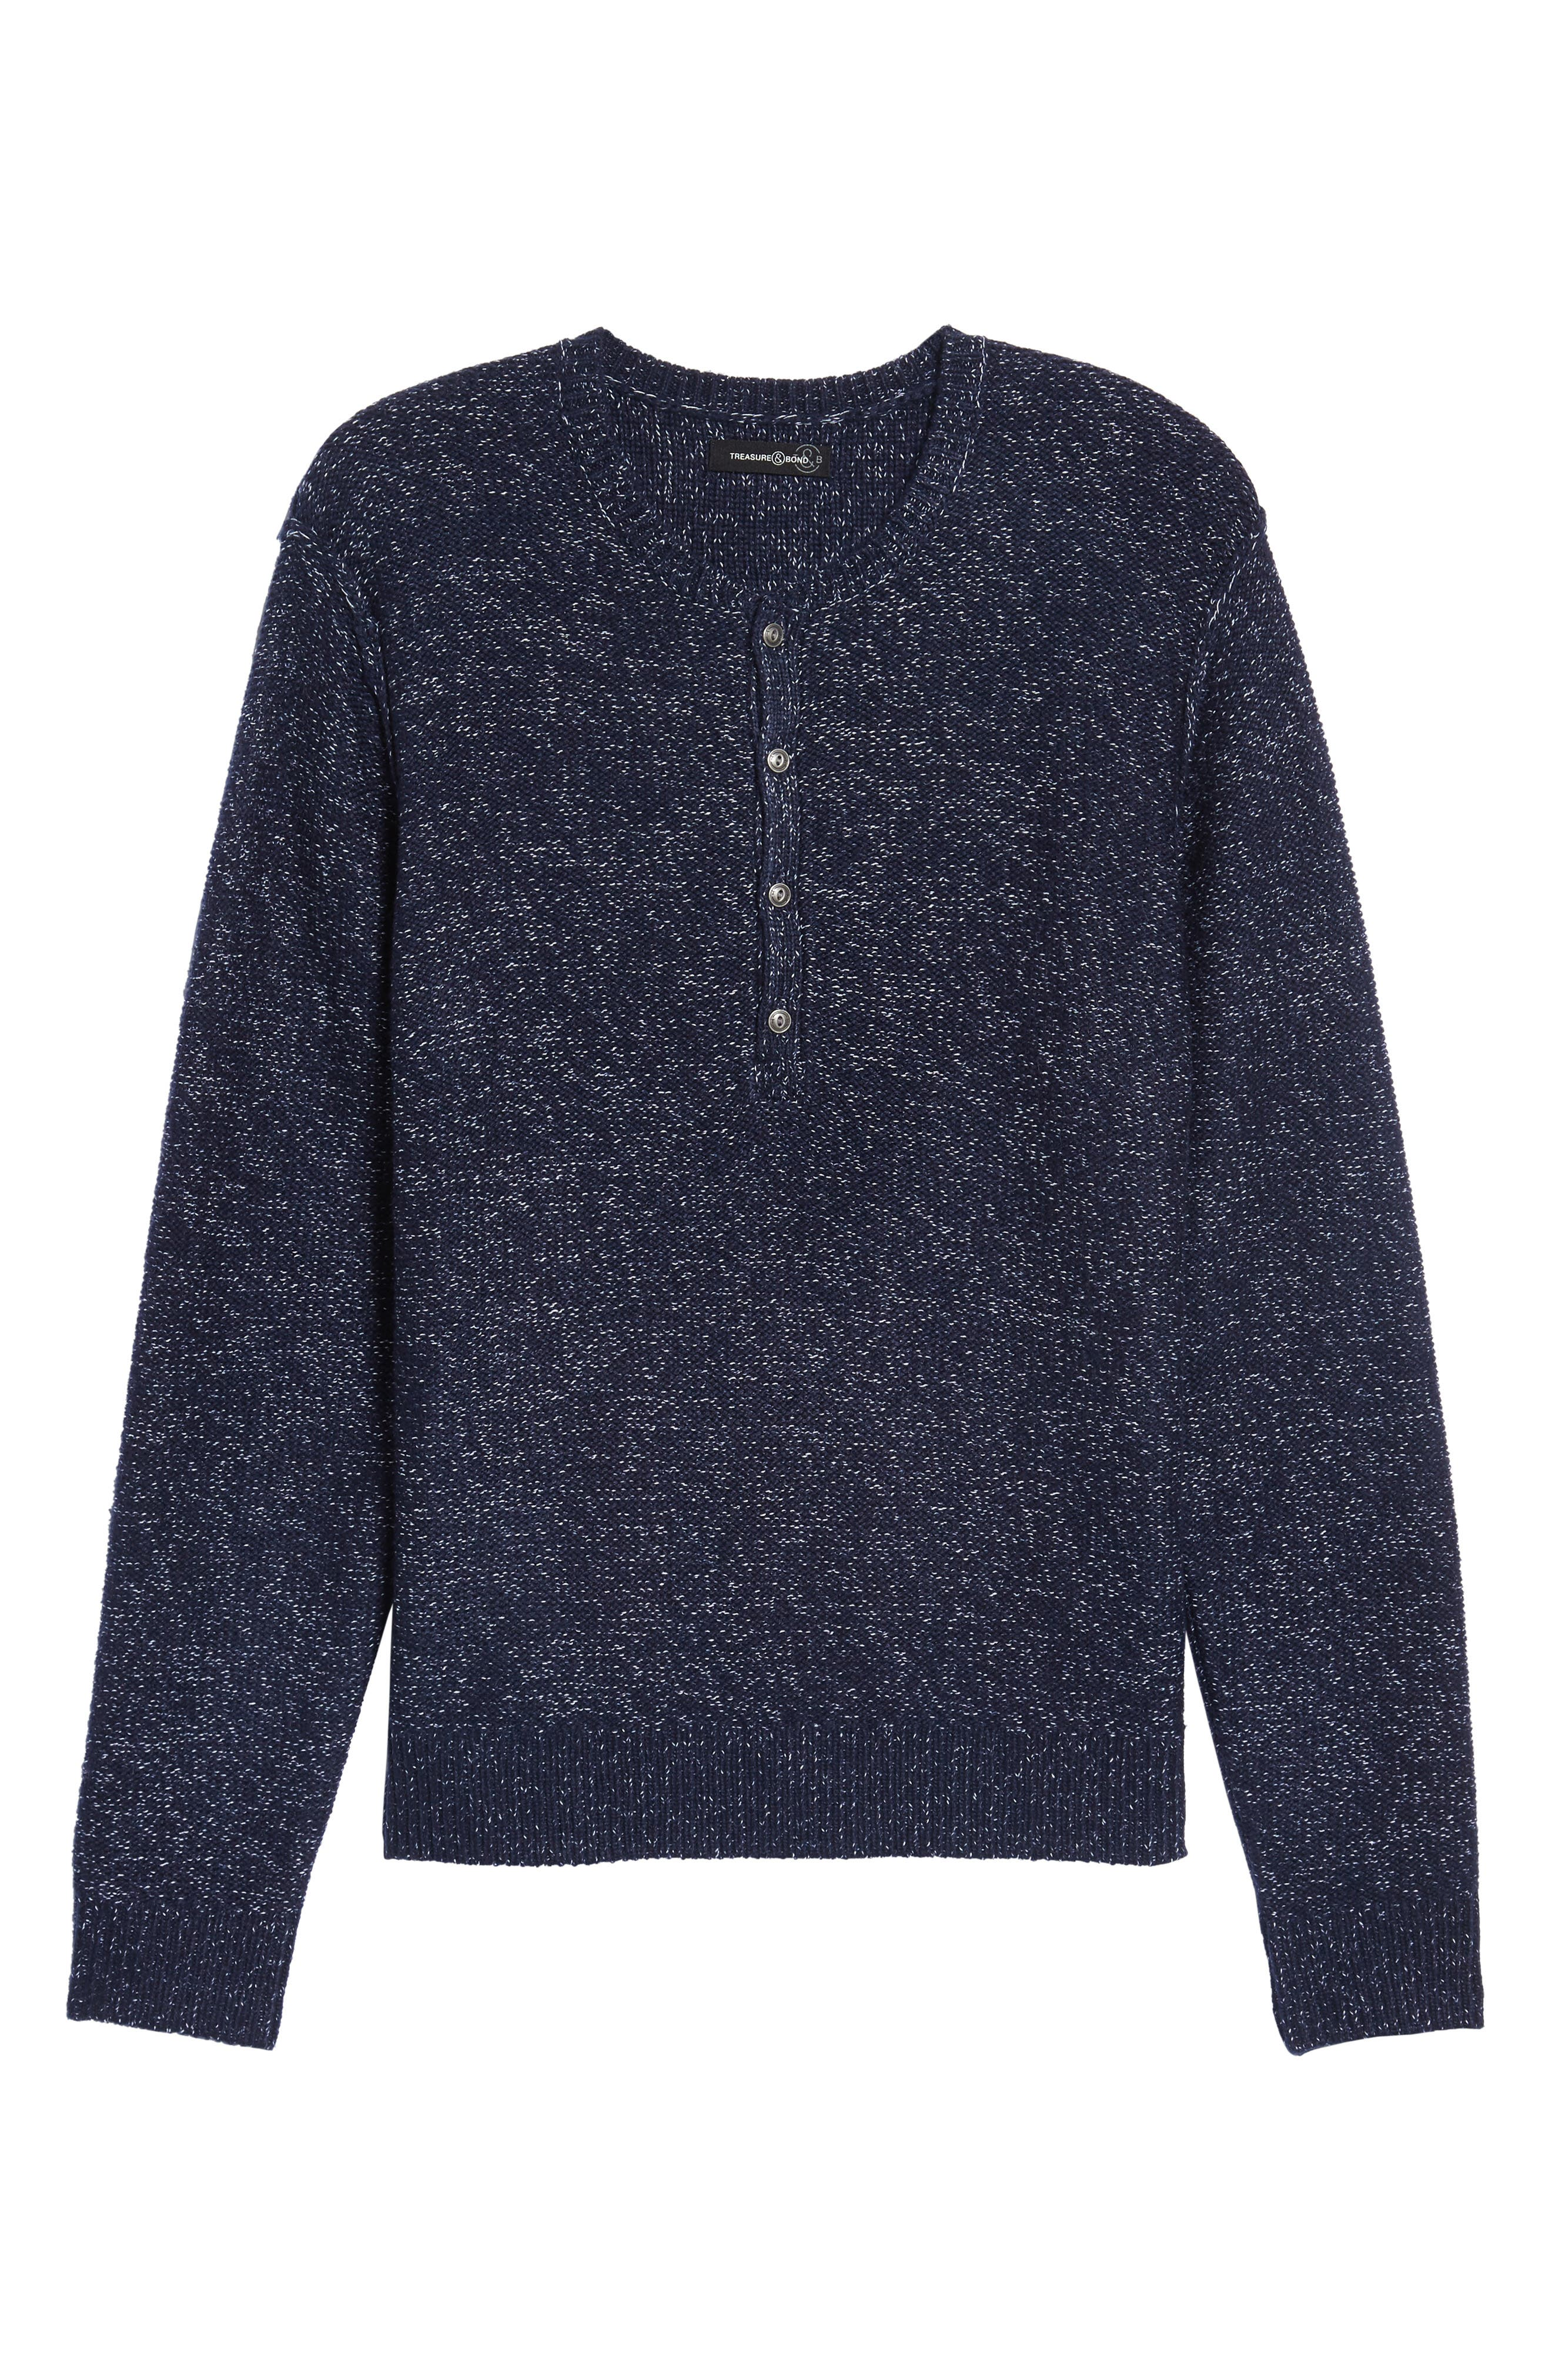 Marled Henley Sweater,                             Alternate thumbnail 6, color,                             410